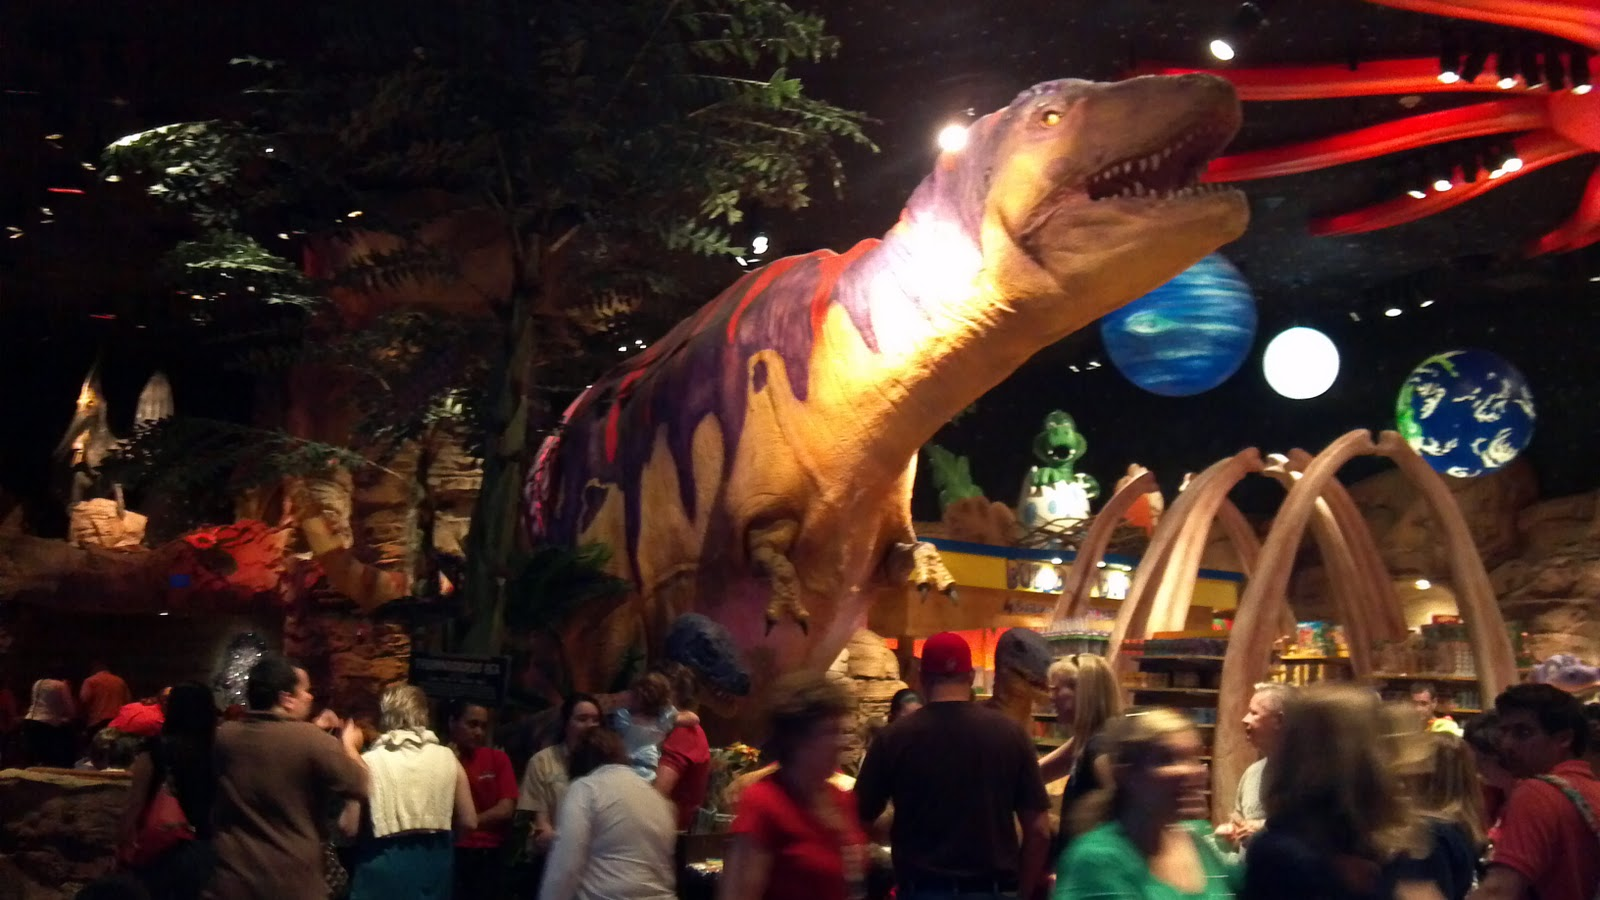 Orlando area theme parks attractions and eateries t rex for Disney dining reservations t rex